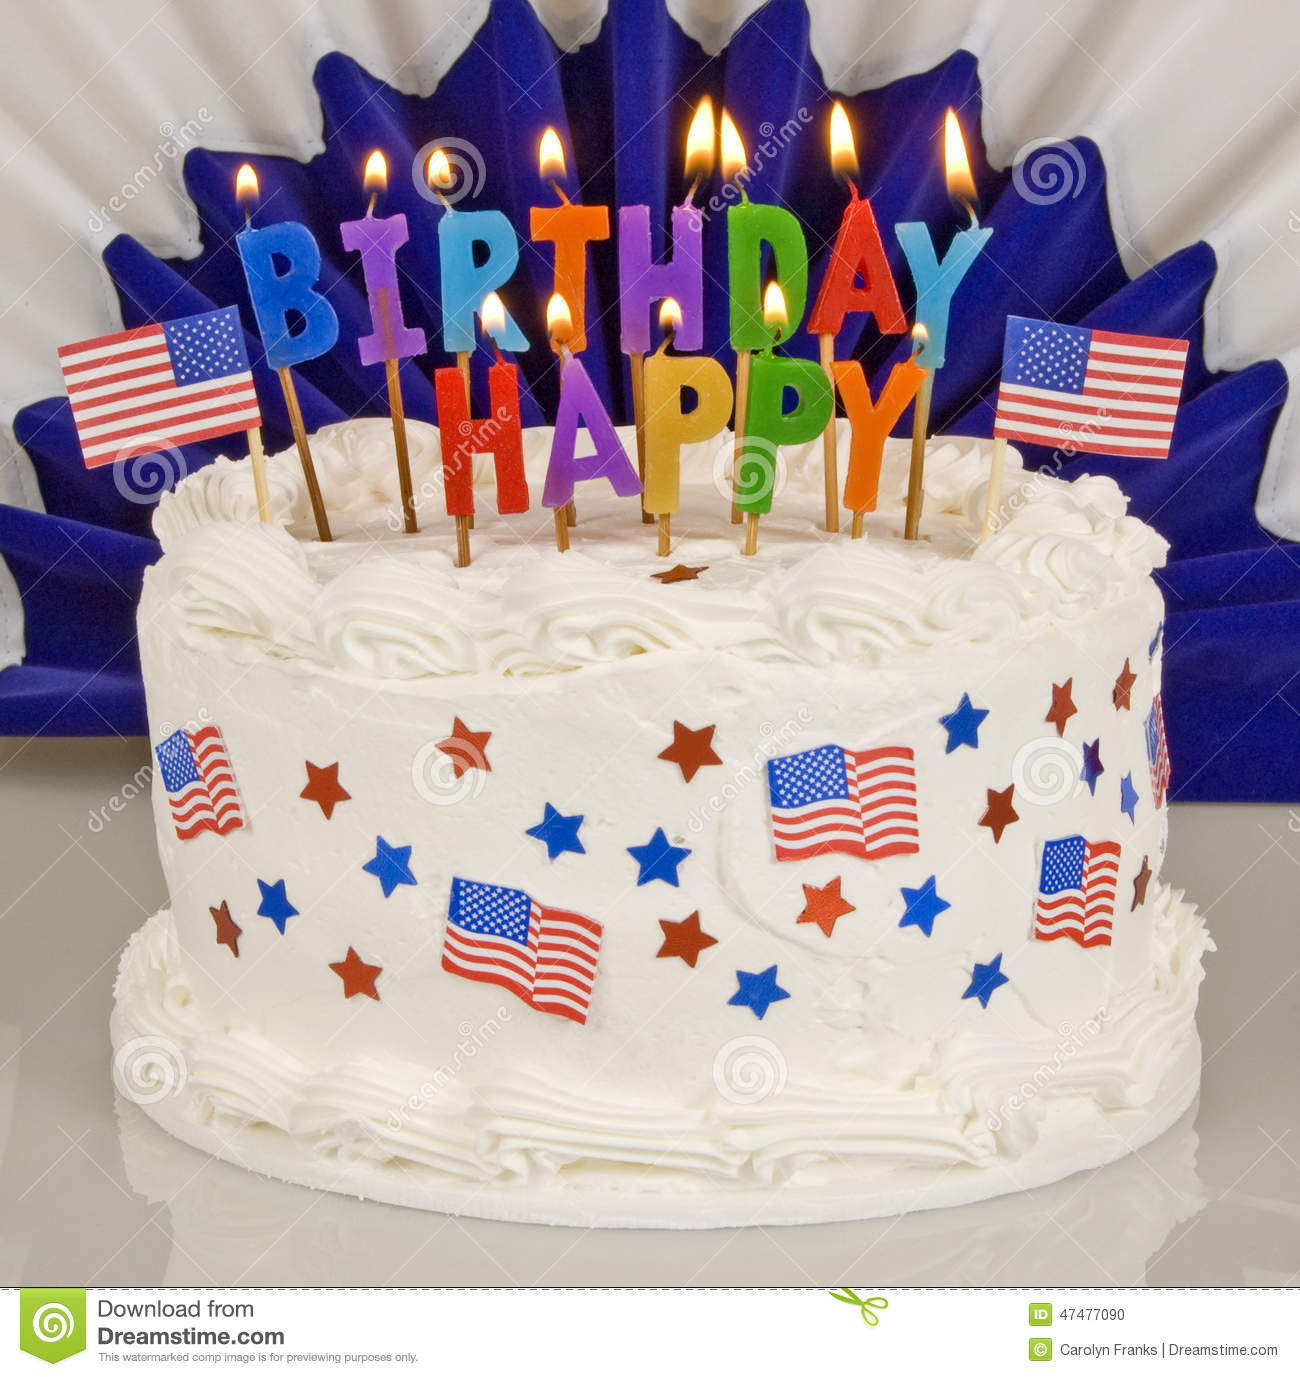 Patriotic 4th Of July Birthday Cake Stock Photo Image Of Holiday